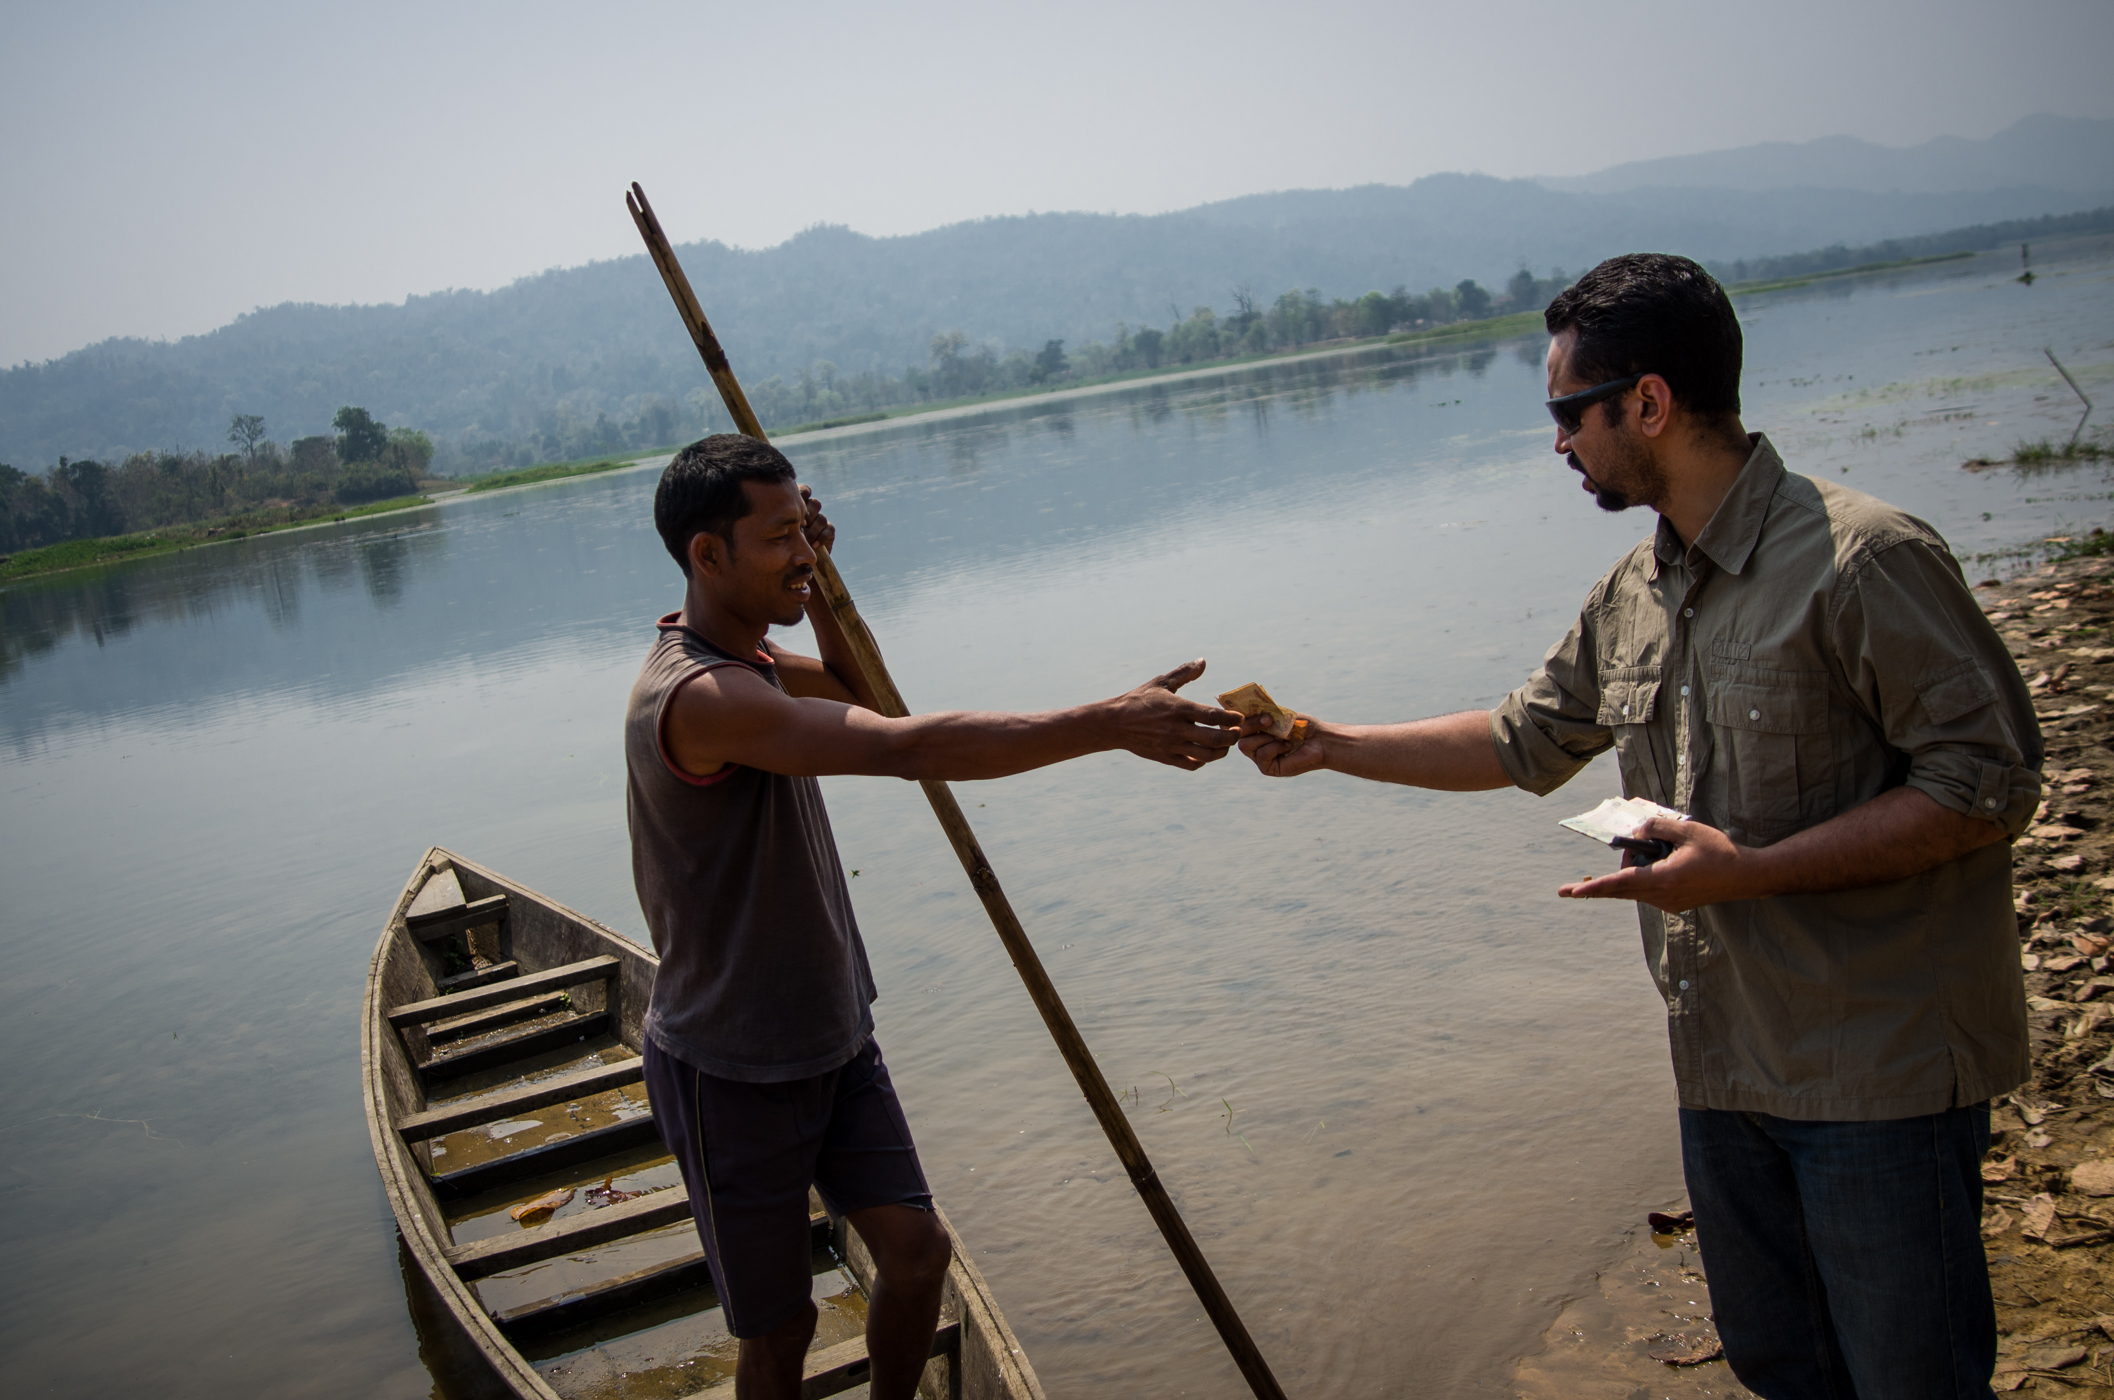 Neel paying local for a boat ride while scouting new land in Assam.